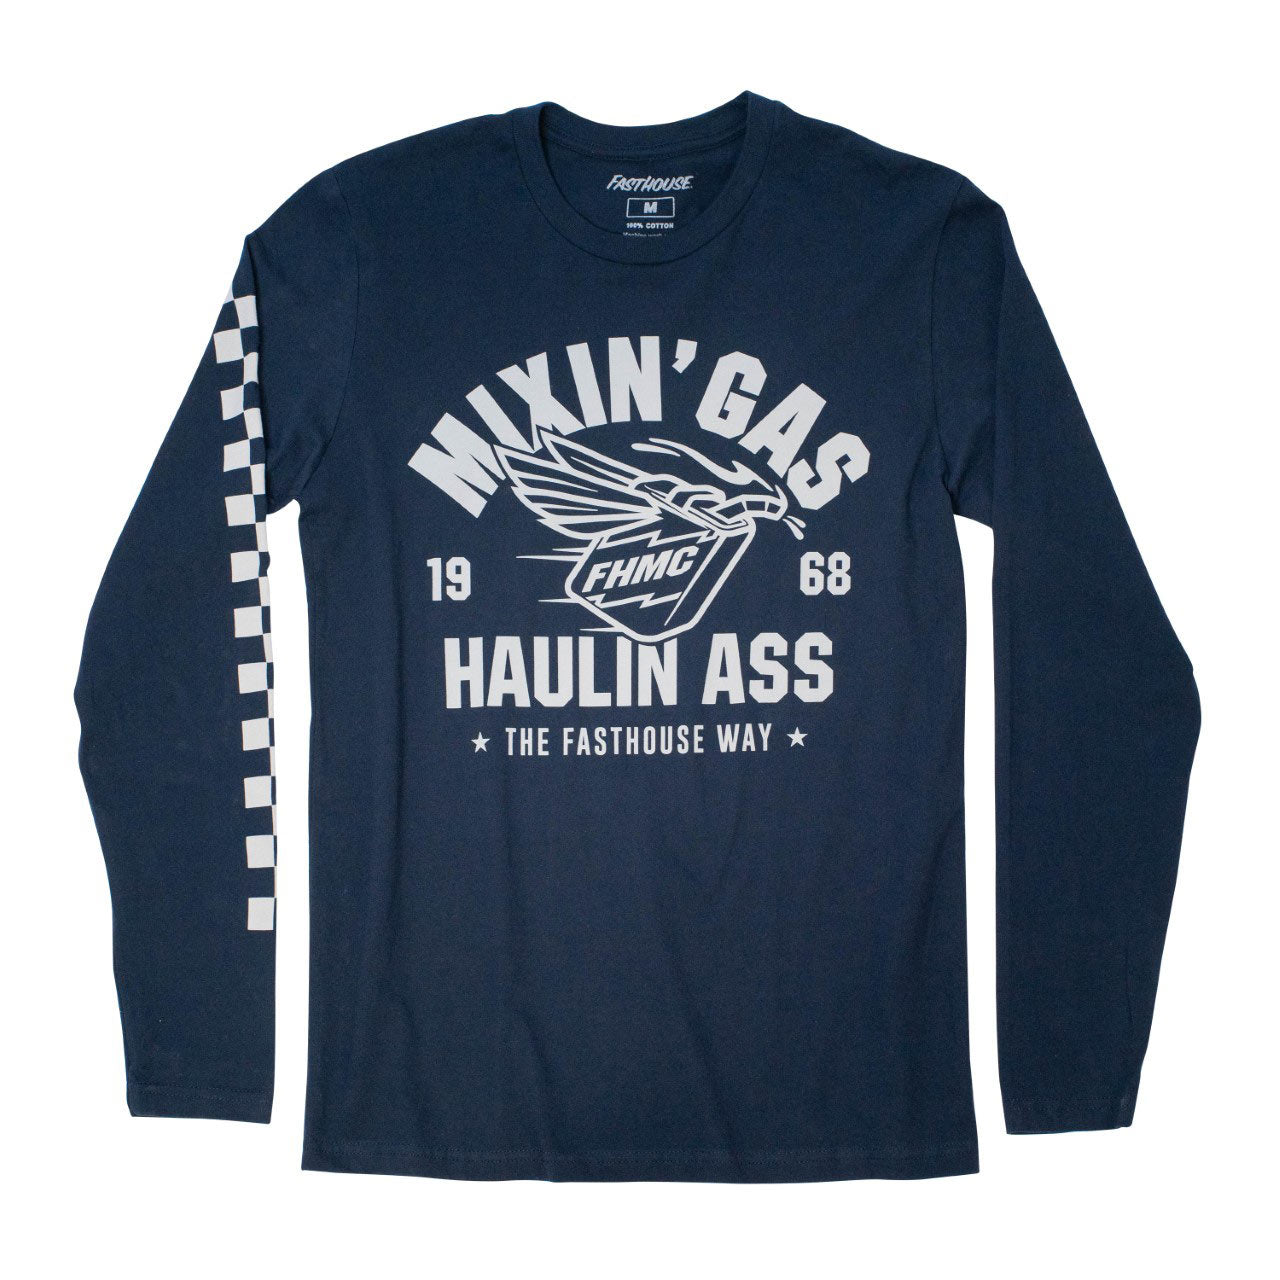 Mixing Gas Pro Am LS Tee - Navy